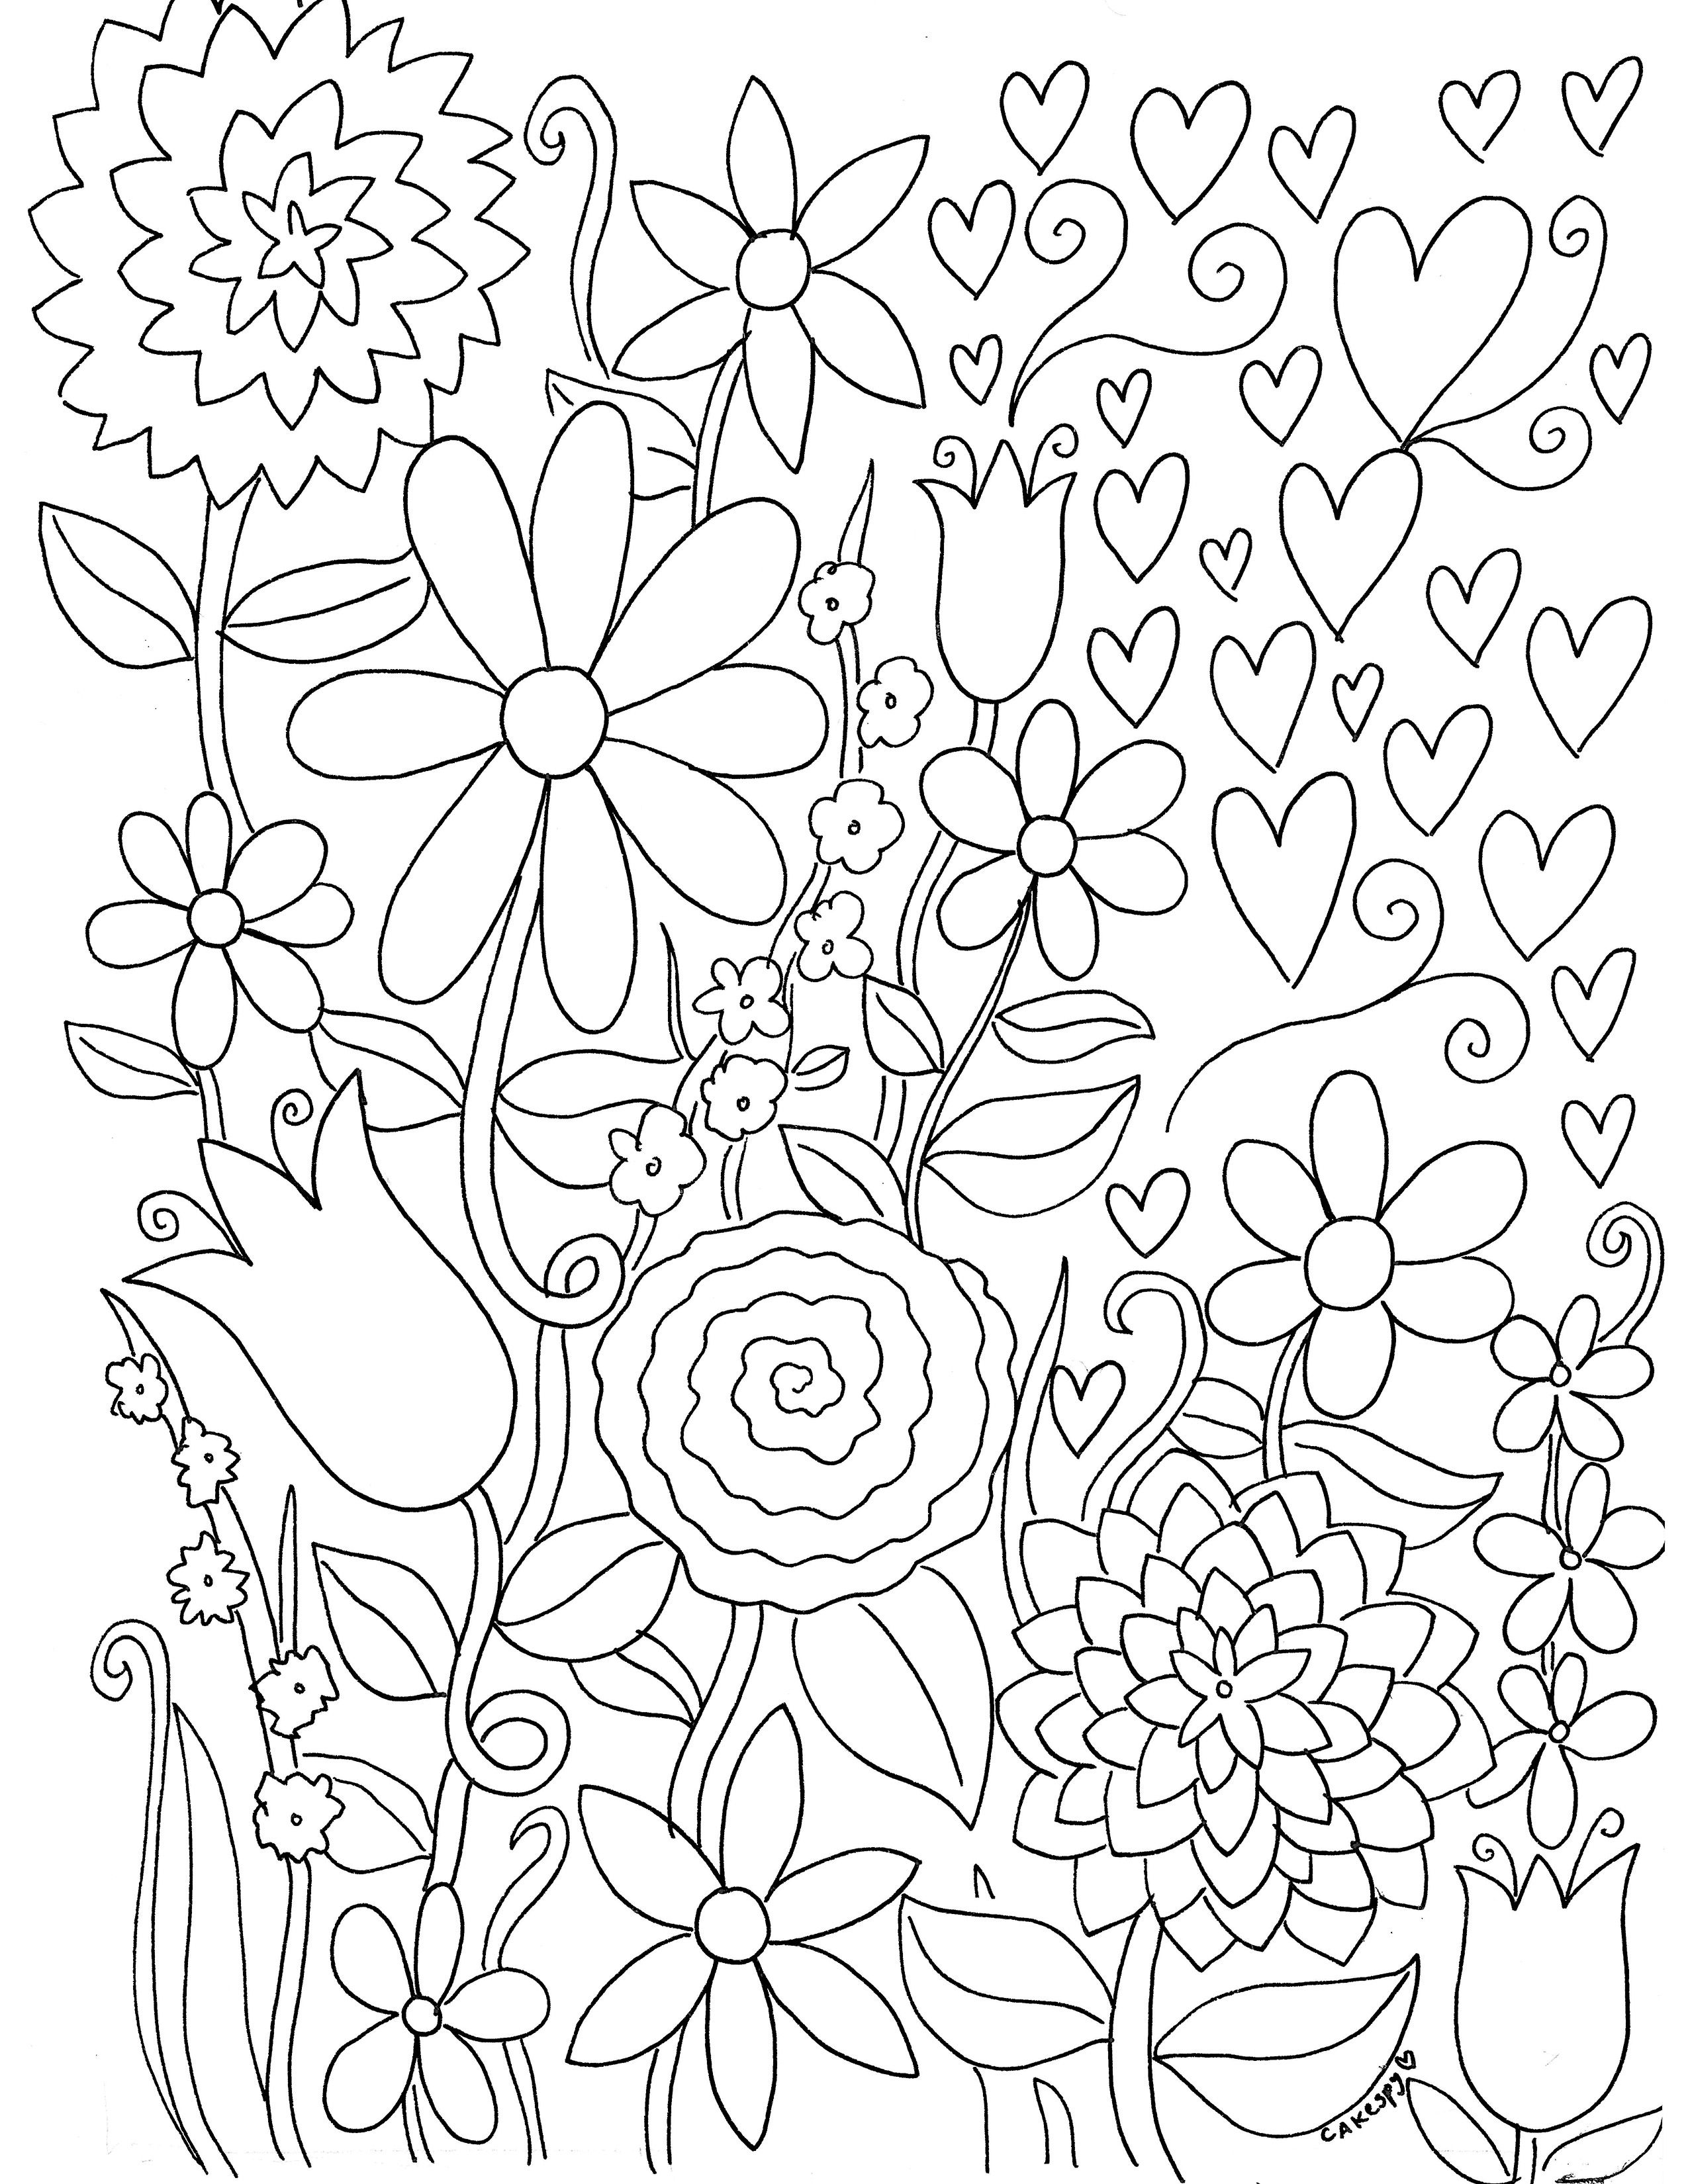 Free Coloring Book Pages For Adults Free Coloring Pages